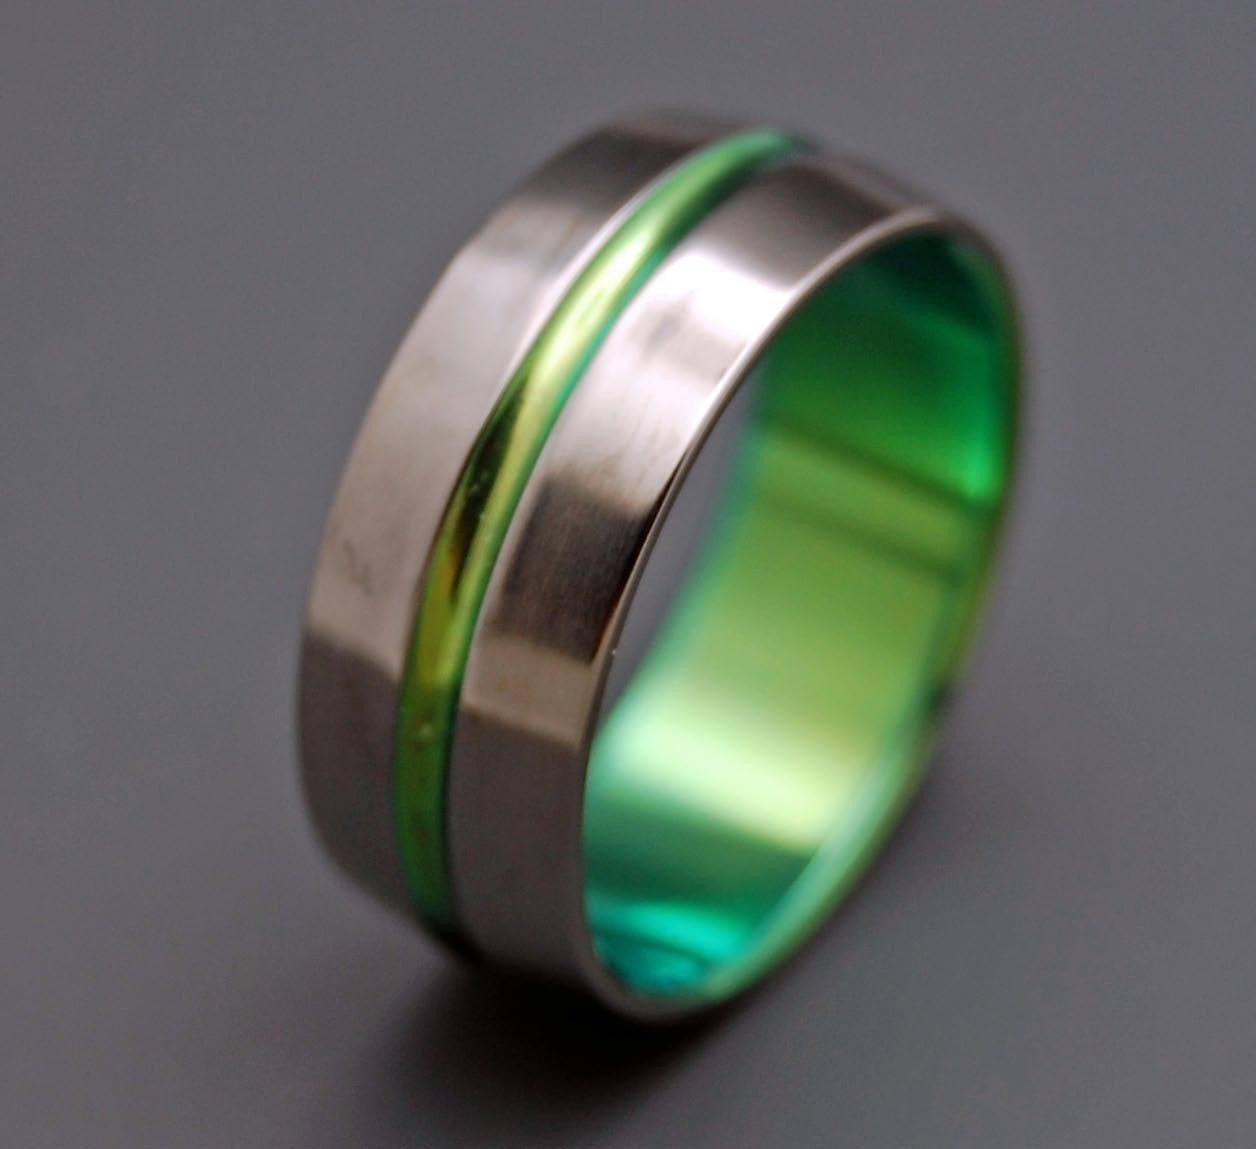 titanium wedding ring wedding ring titaniun rings mens ring womens rings - Green Wedding Rings